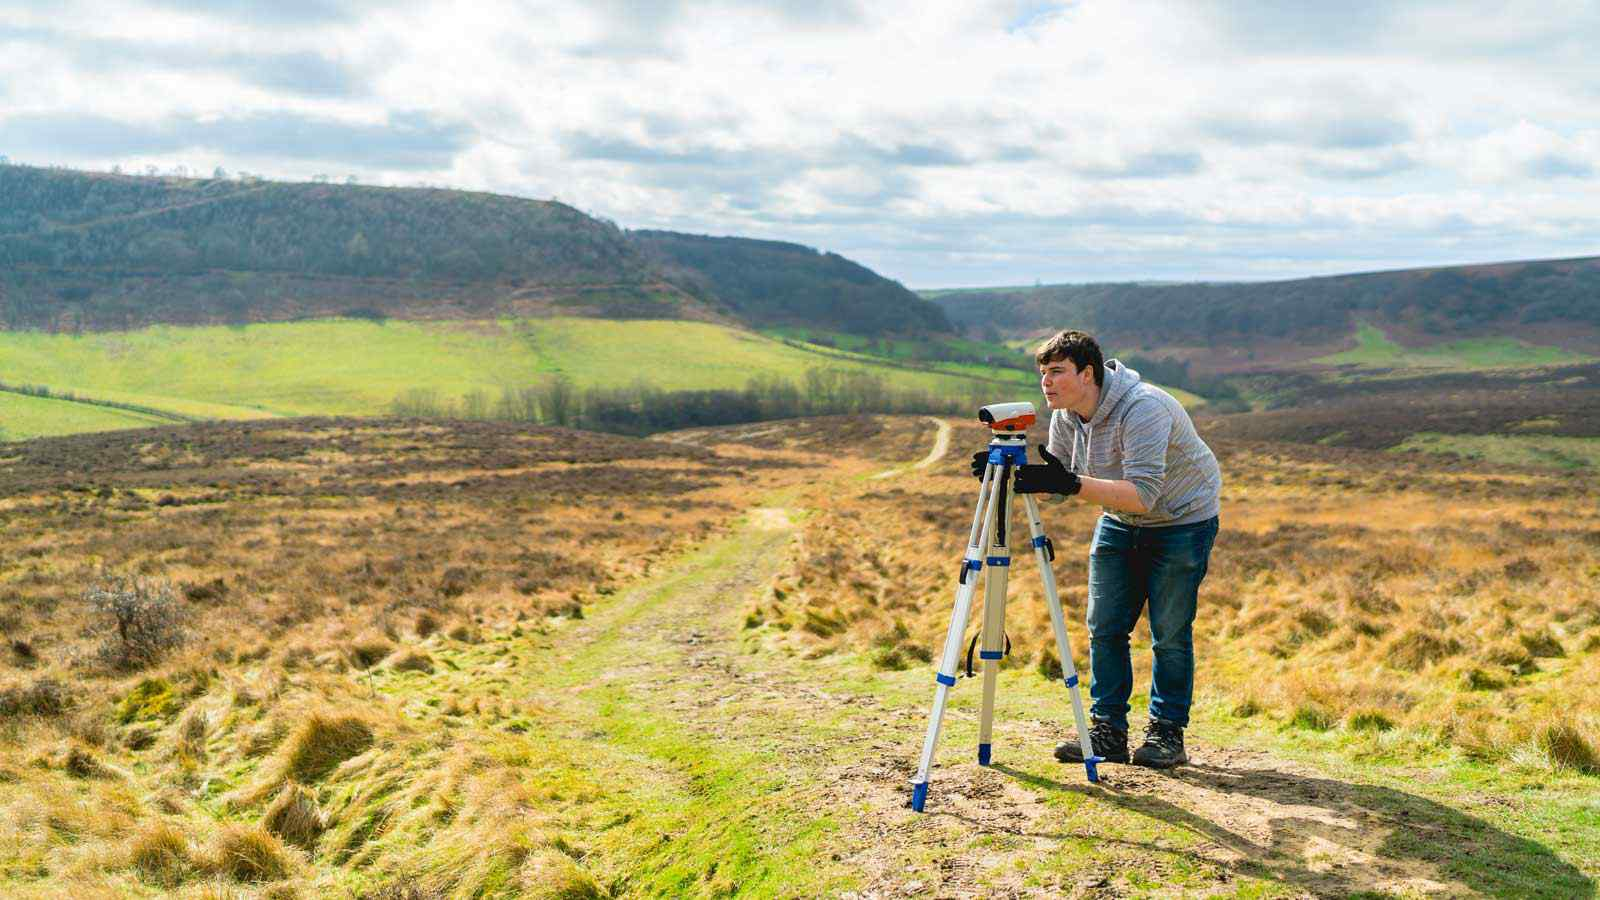 Student using equipment on geography field trip